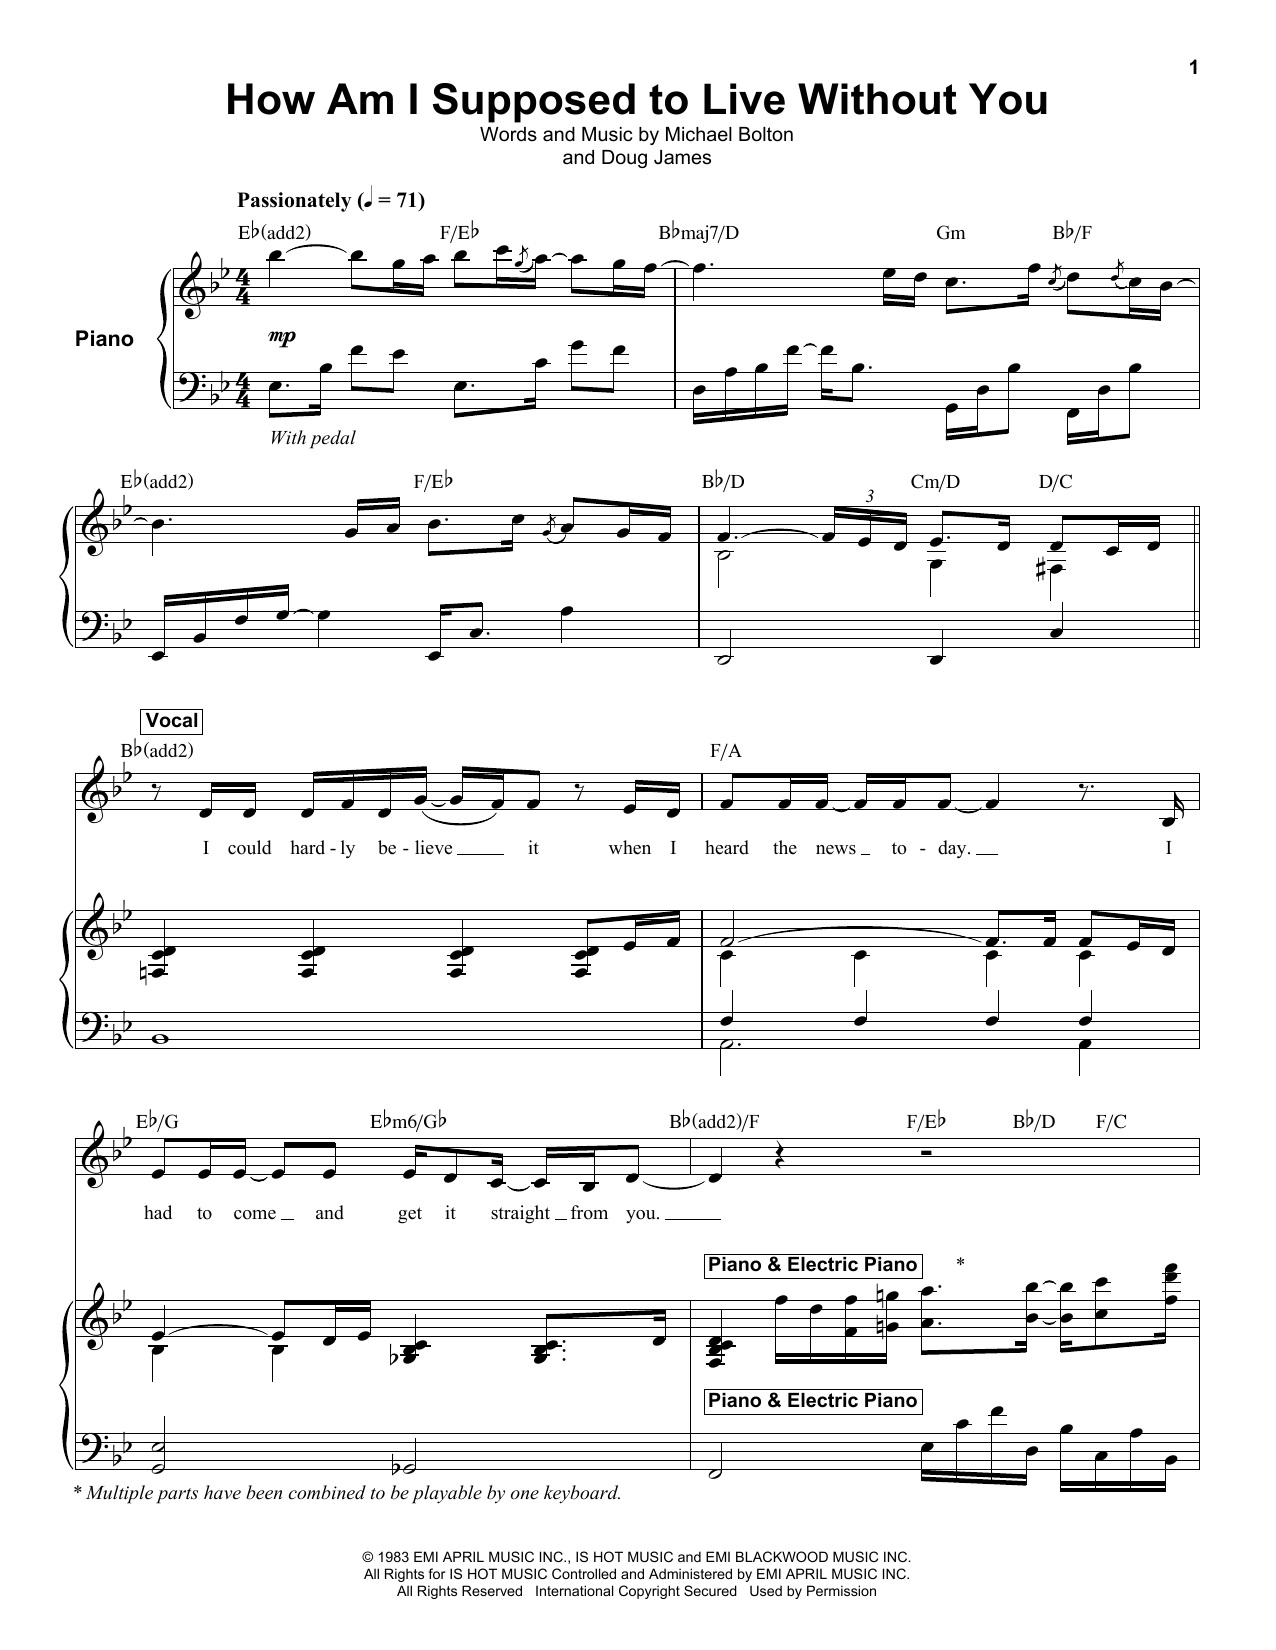 How Am I Supposed To Live Without You (Keyboard Transcription)